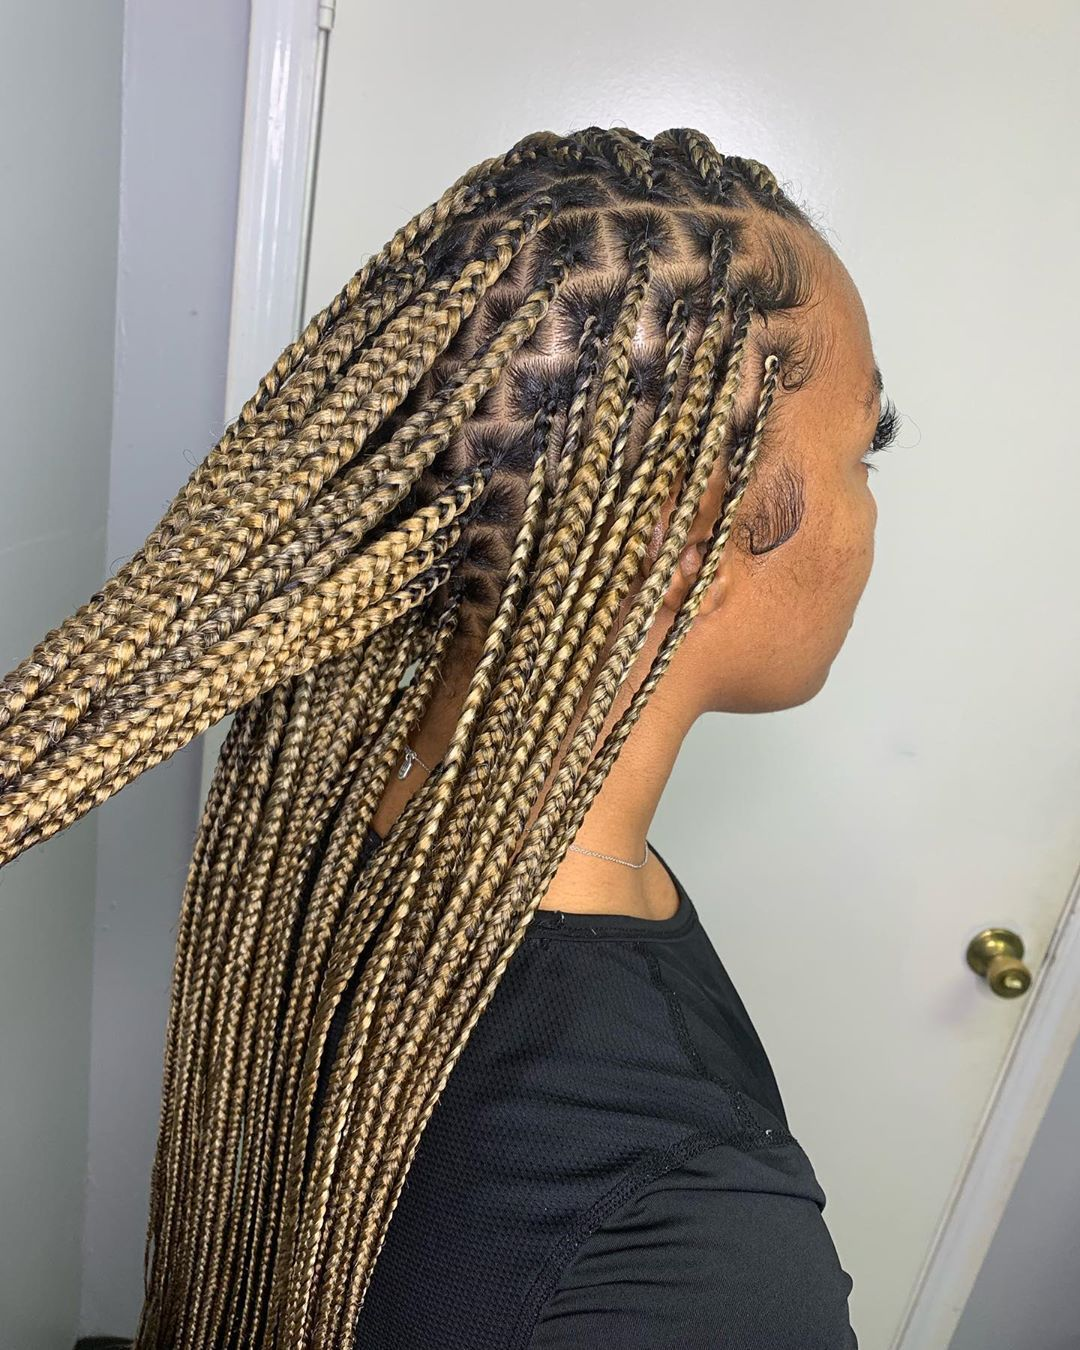 Hairstyles 2020 Female Braids Latest Enviable Hair Ideas Zaineey S Blog Hairstyles 2020 Femal In 2020 Blonde Box Braids Box Braids Styling Box Braids Hairstyles